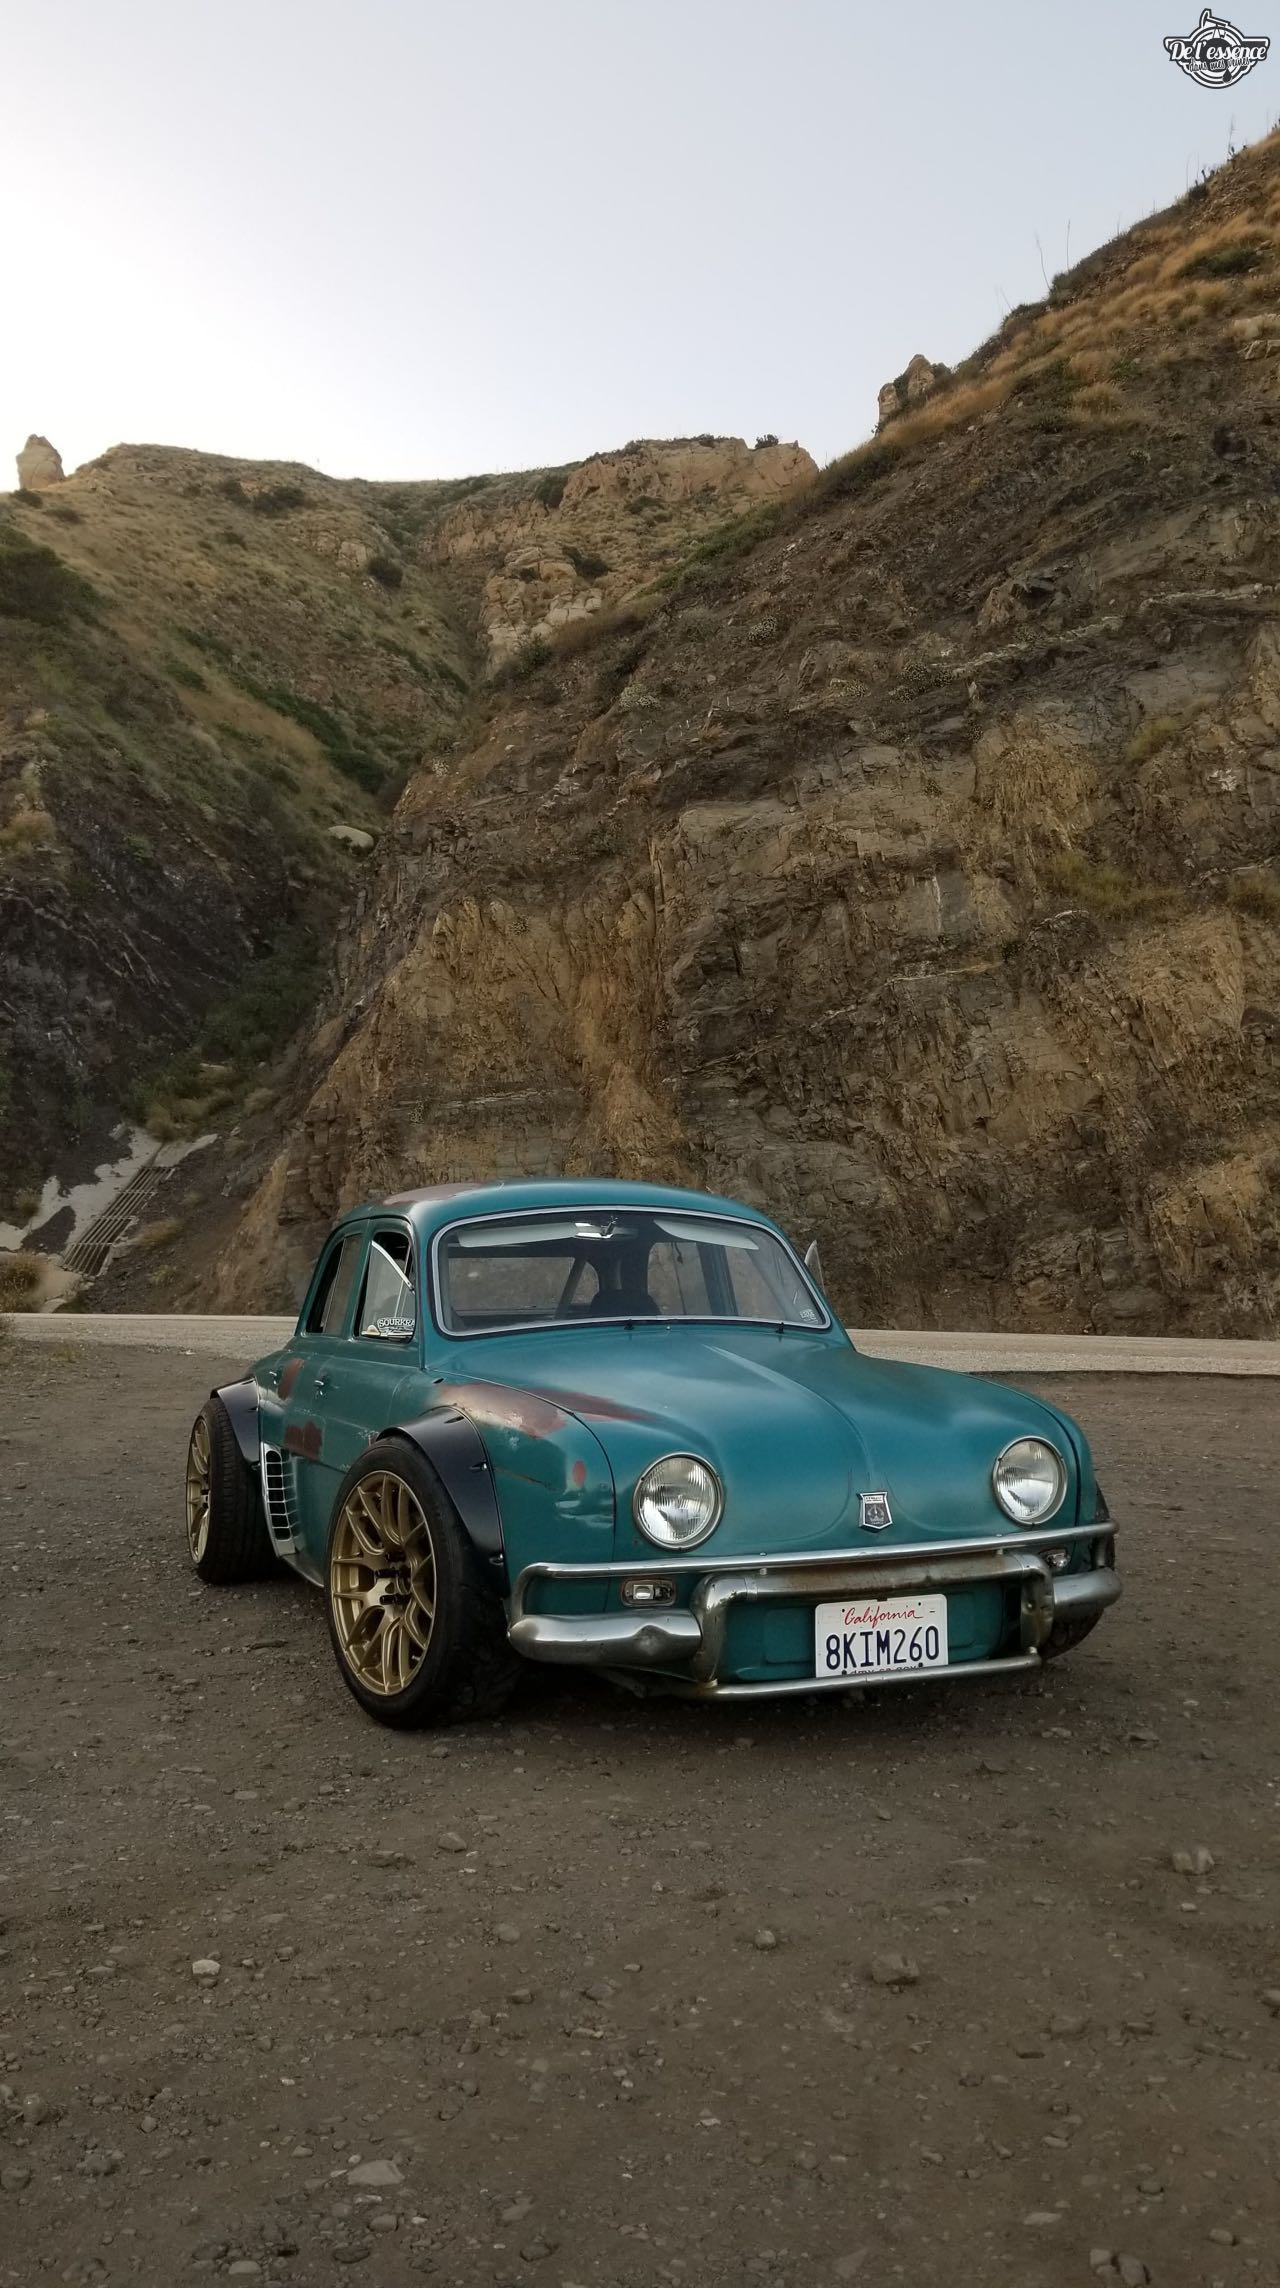 Renault Dauphine VR6 - French Touch in the U.S.A. ! 52